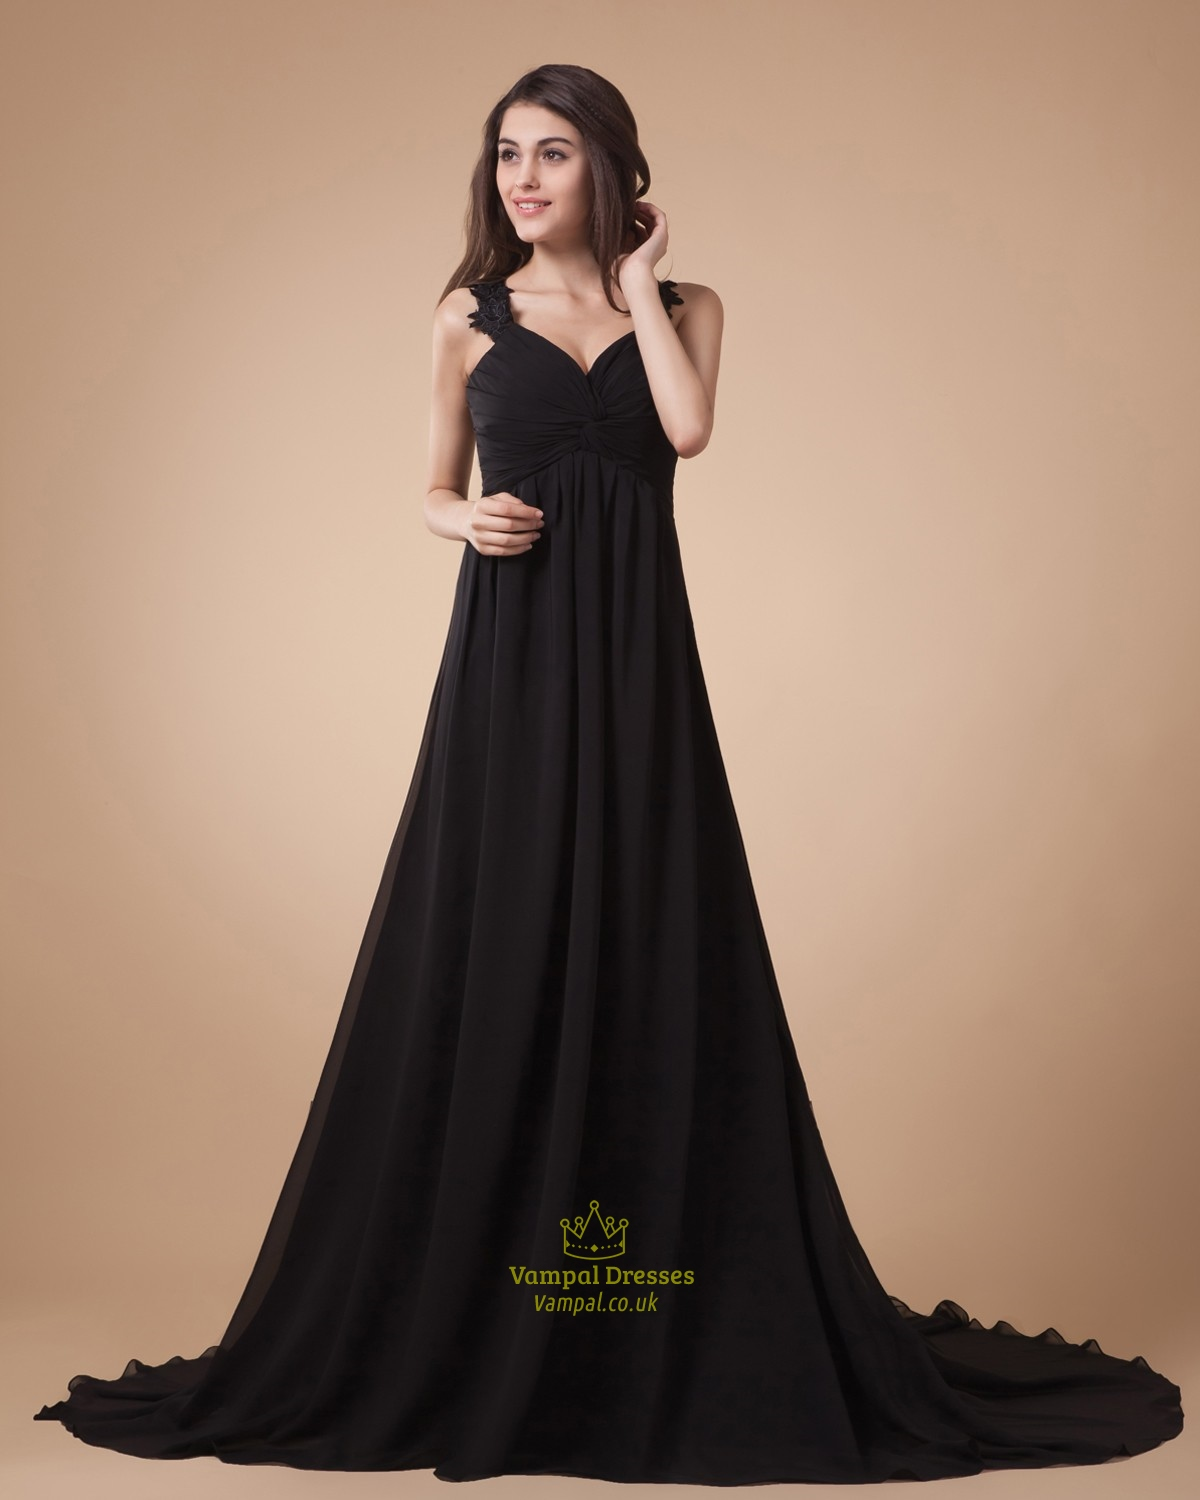 Maxi ball dresses dress ideas for Black designer wedding dresses